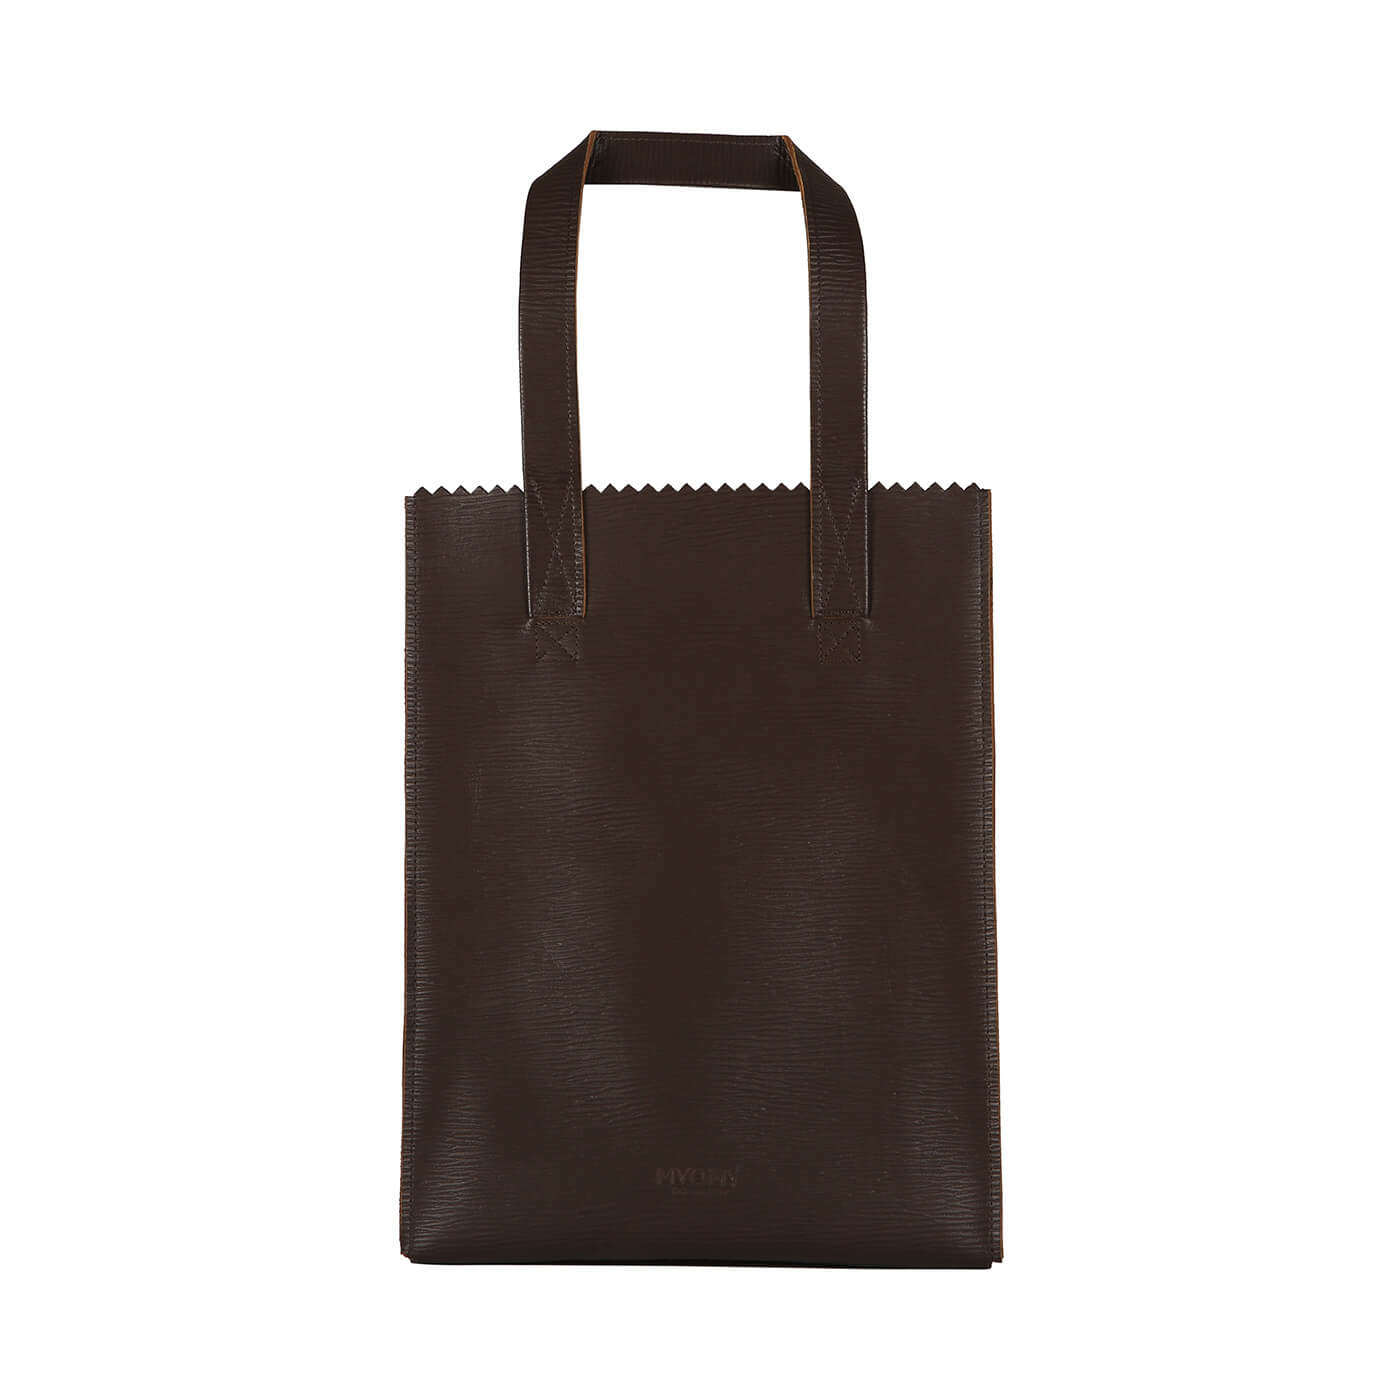 [PRE-ORDER] MY PAPER BAG Long handle zip – boarded dark brown